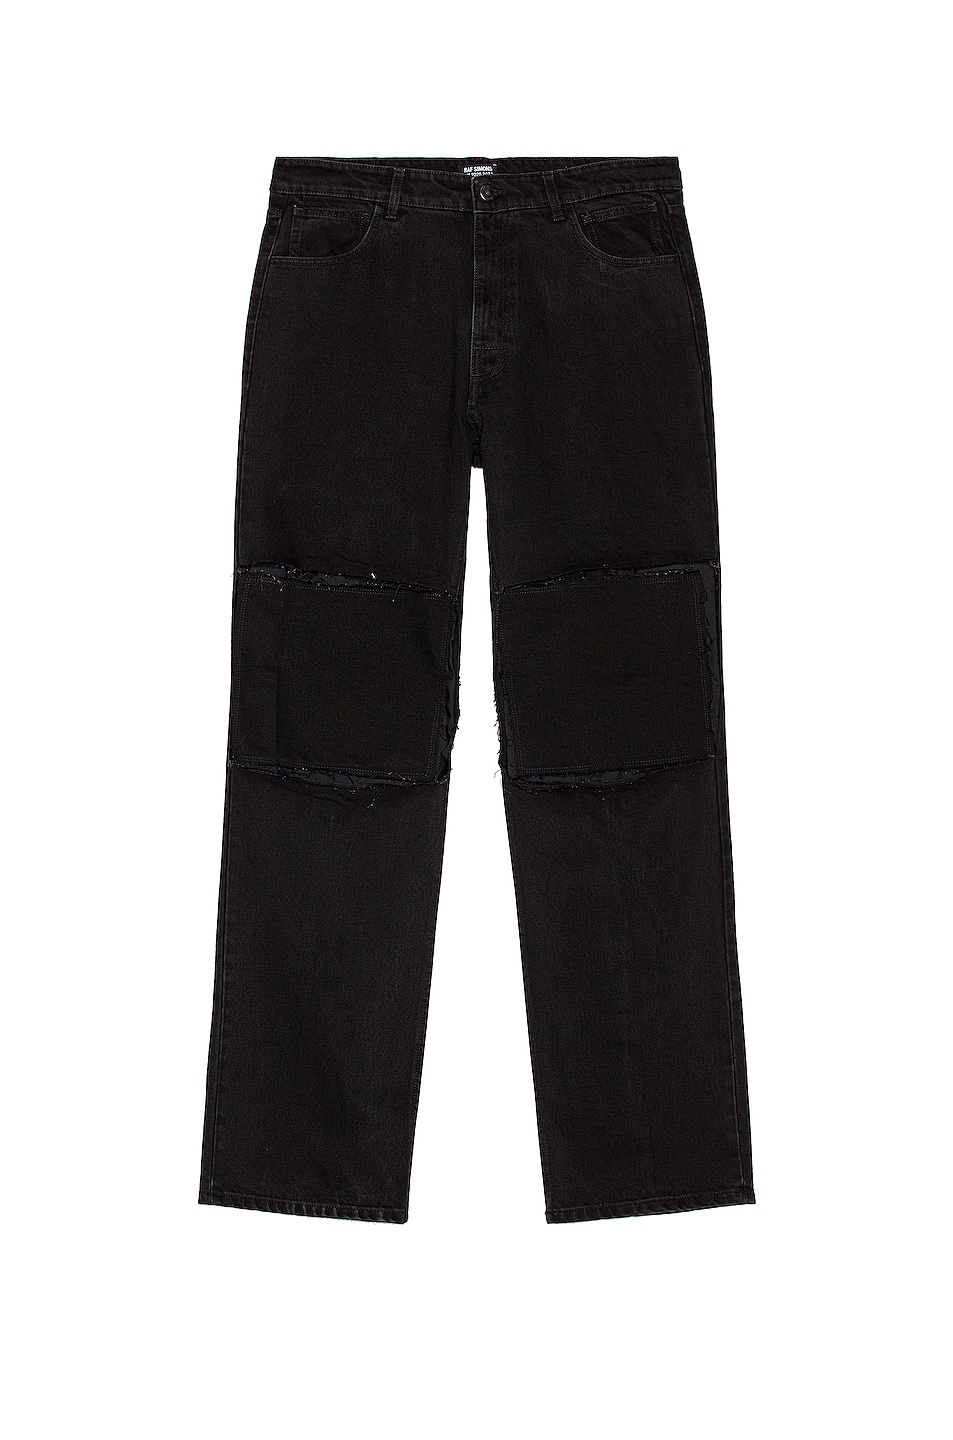 Image 1 of Raf Simons Relaxed Fit Denim Pants With Cut Out Knee Patches in Black